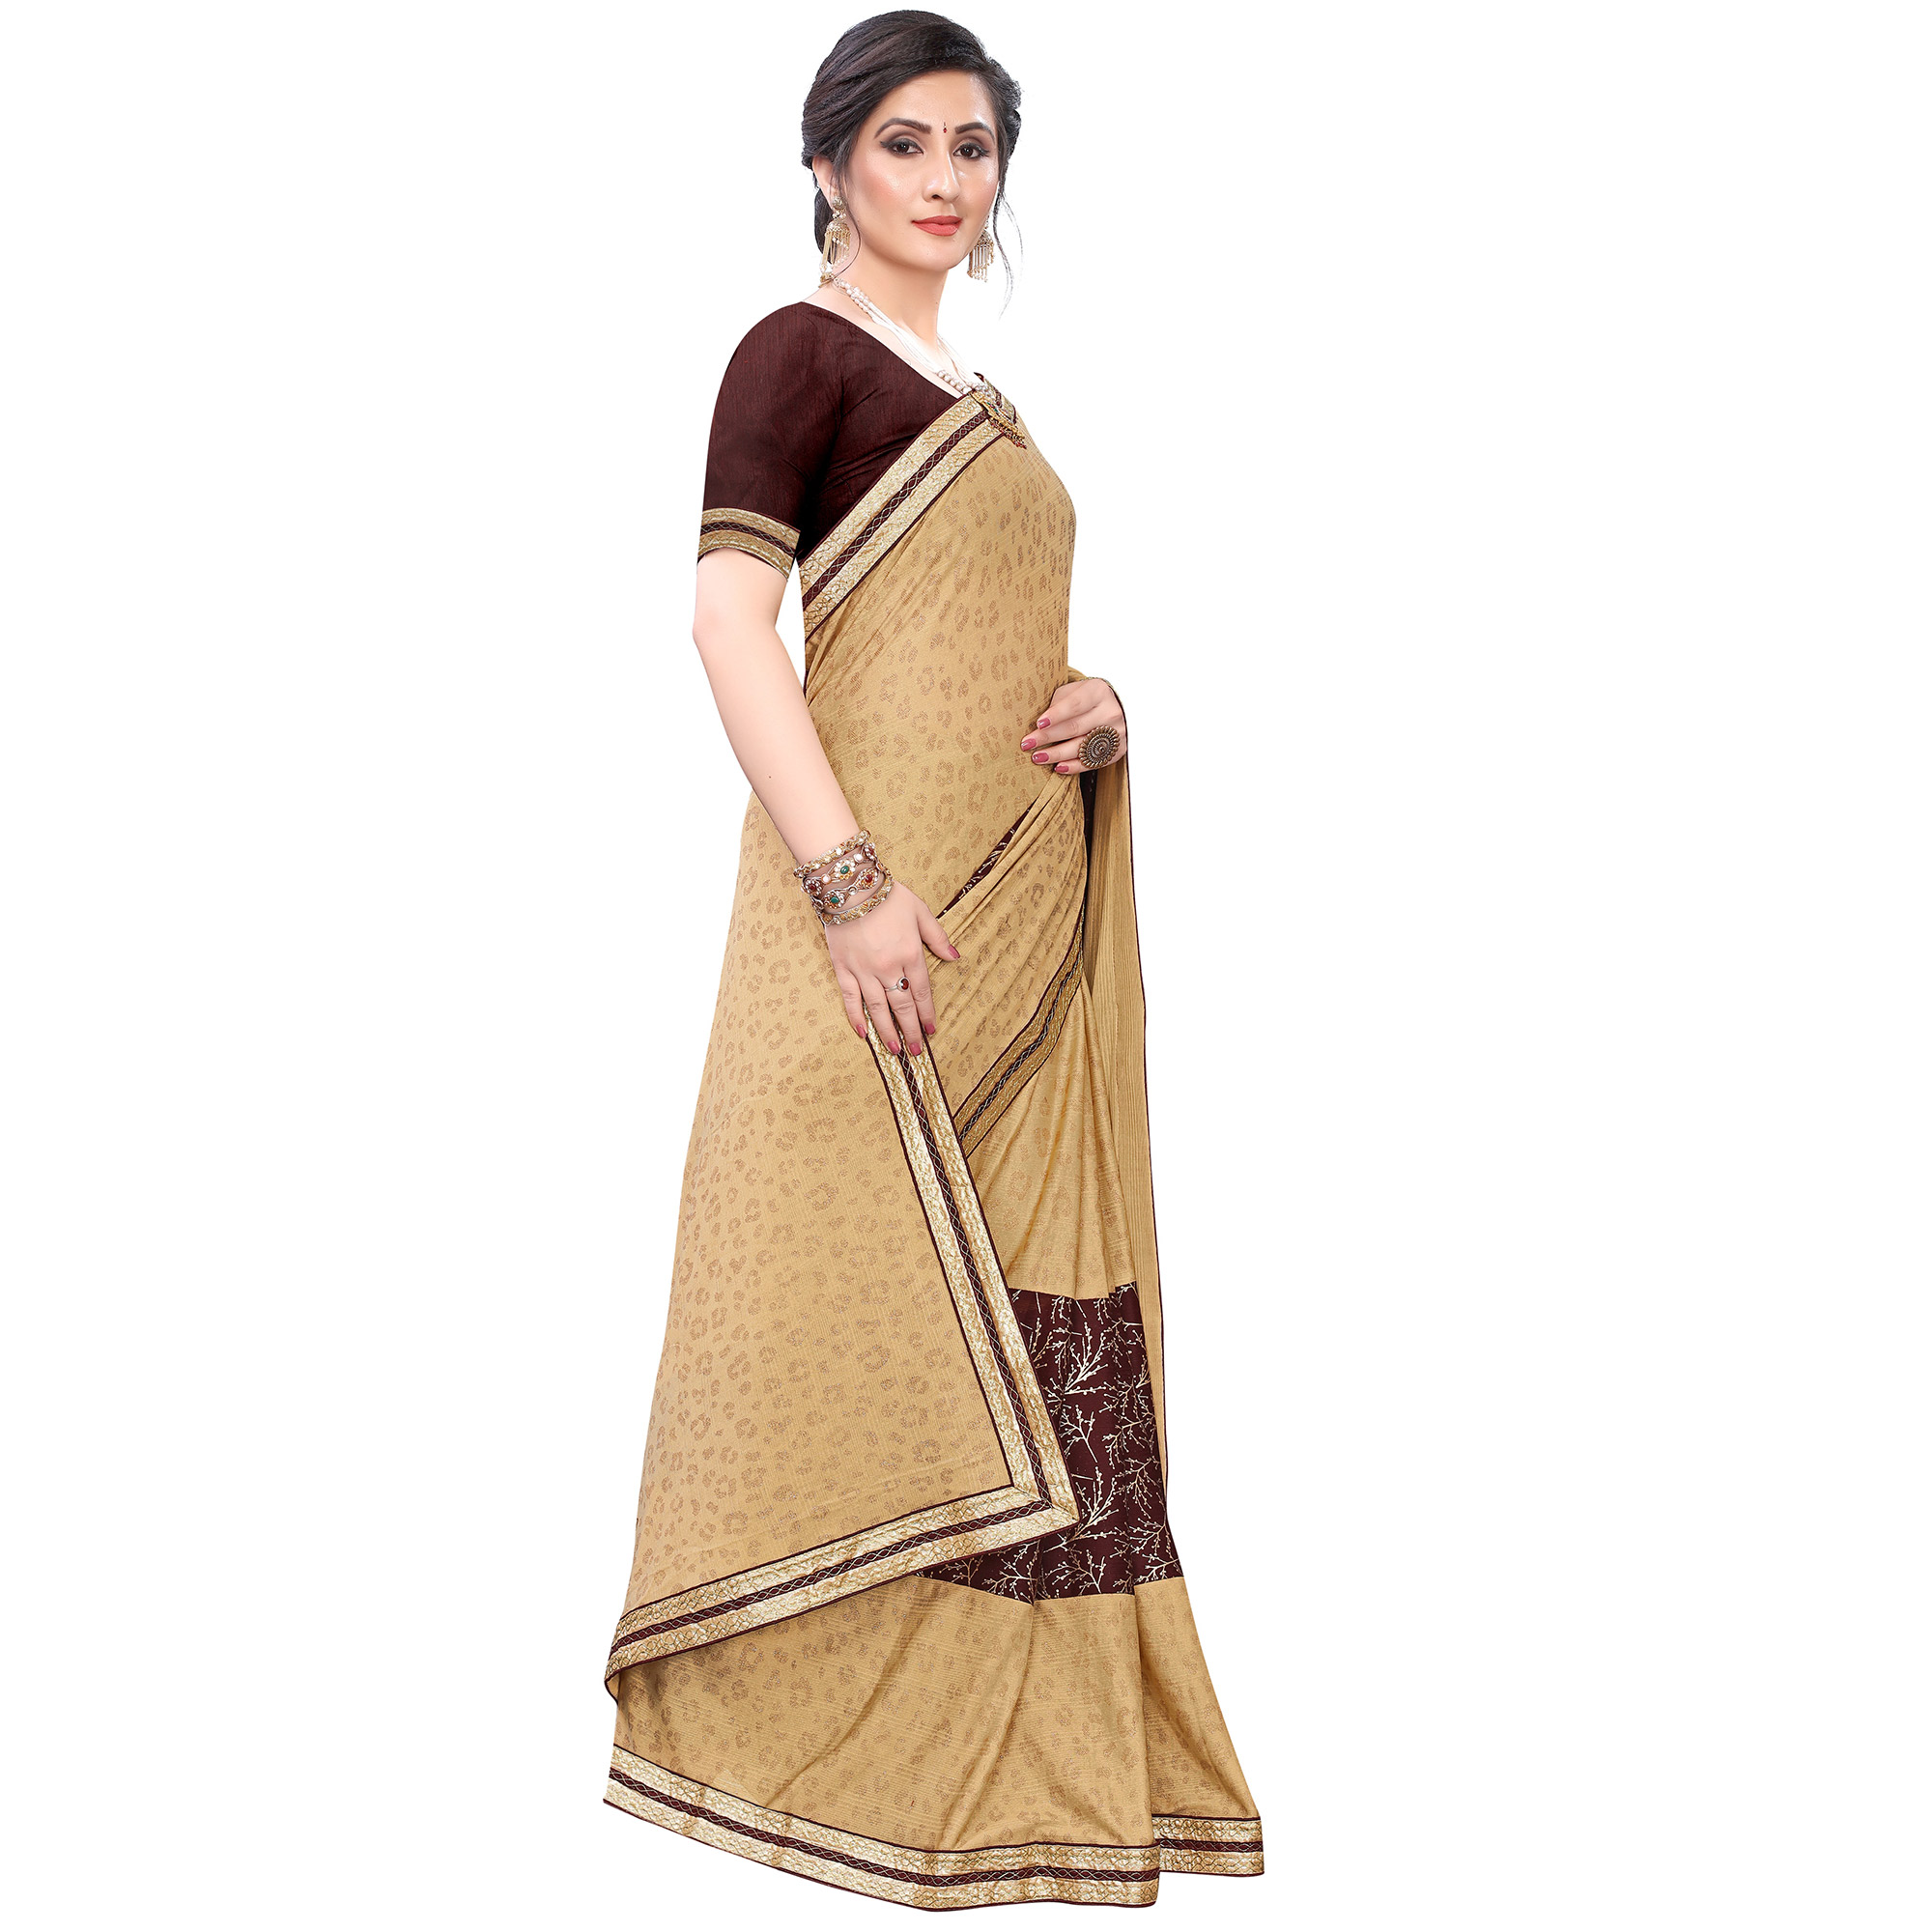 Blooming Beige-Coffee Colored Party Wear Foil Printed Lycra Blend Saree